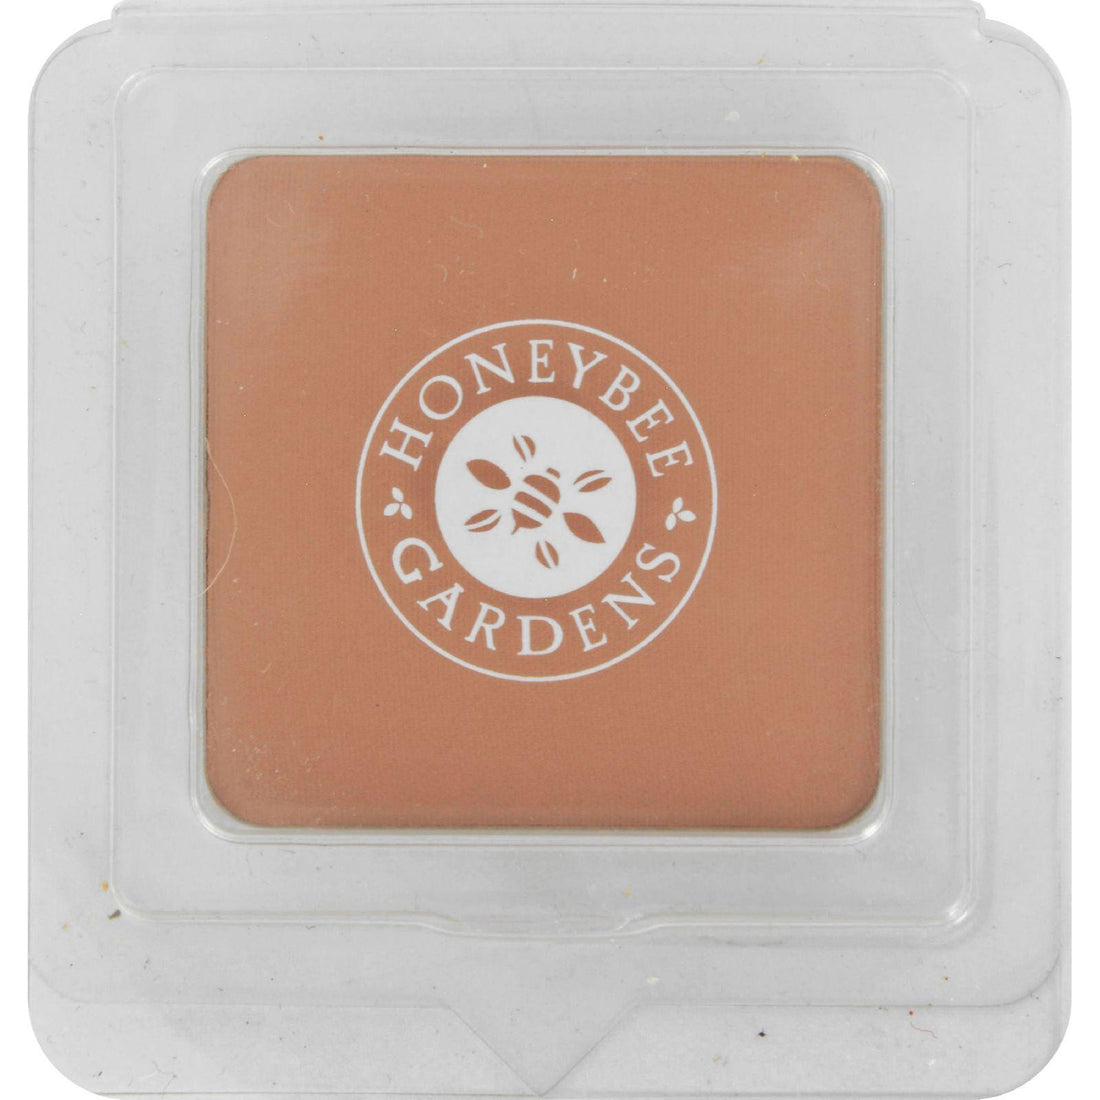 Mother Mantis: Honeybee Gardens Pressed Mineral Powder Montego - .26 Oz Honeybee Gardens